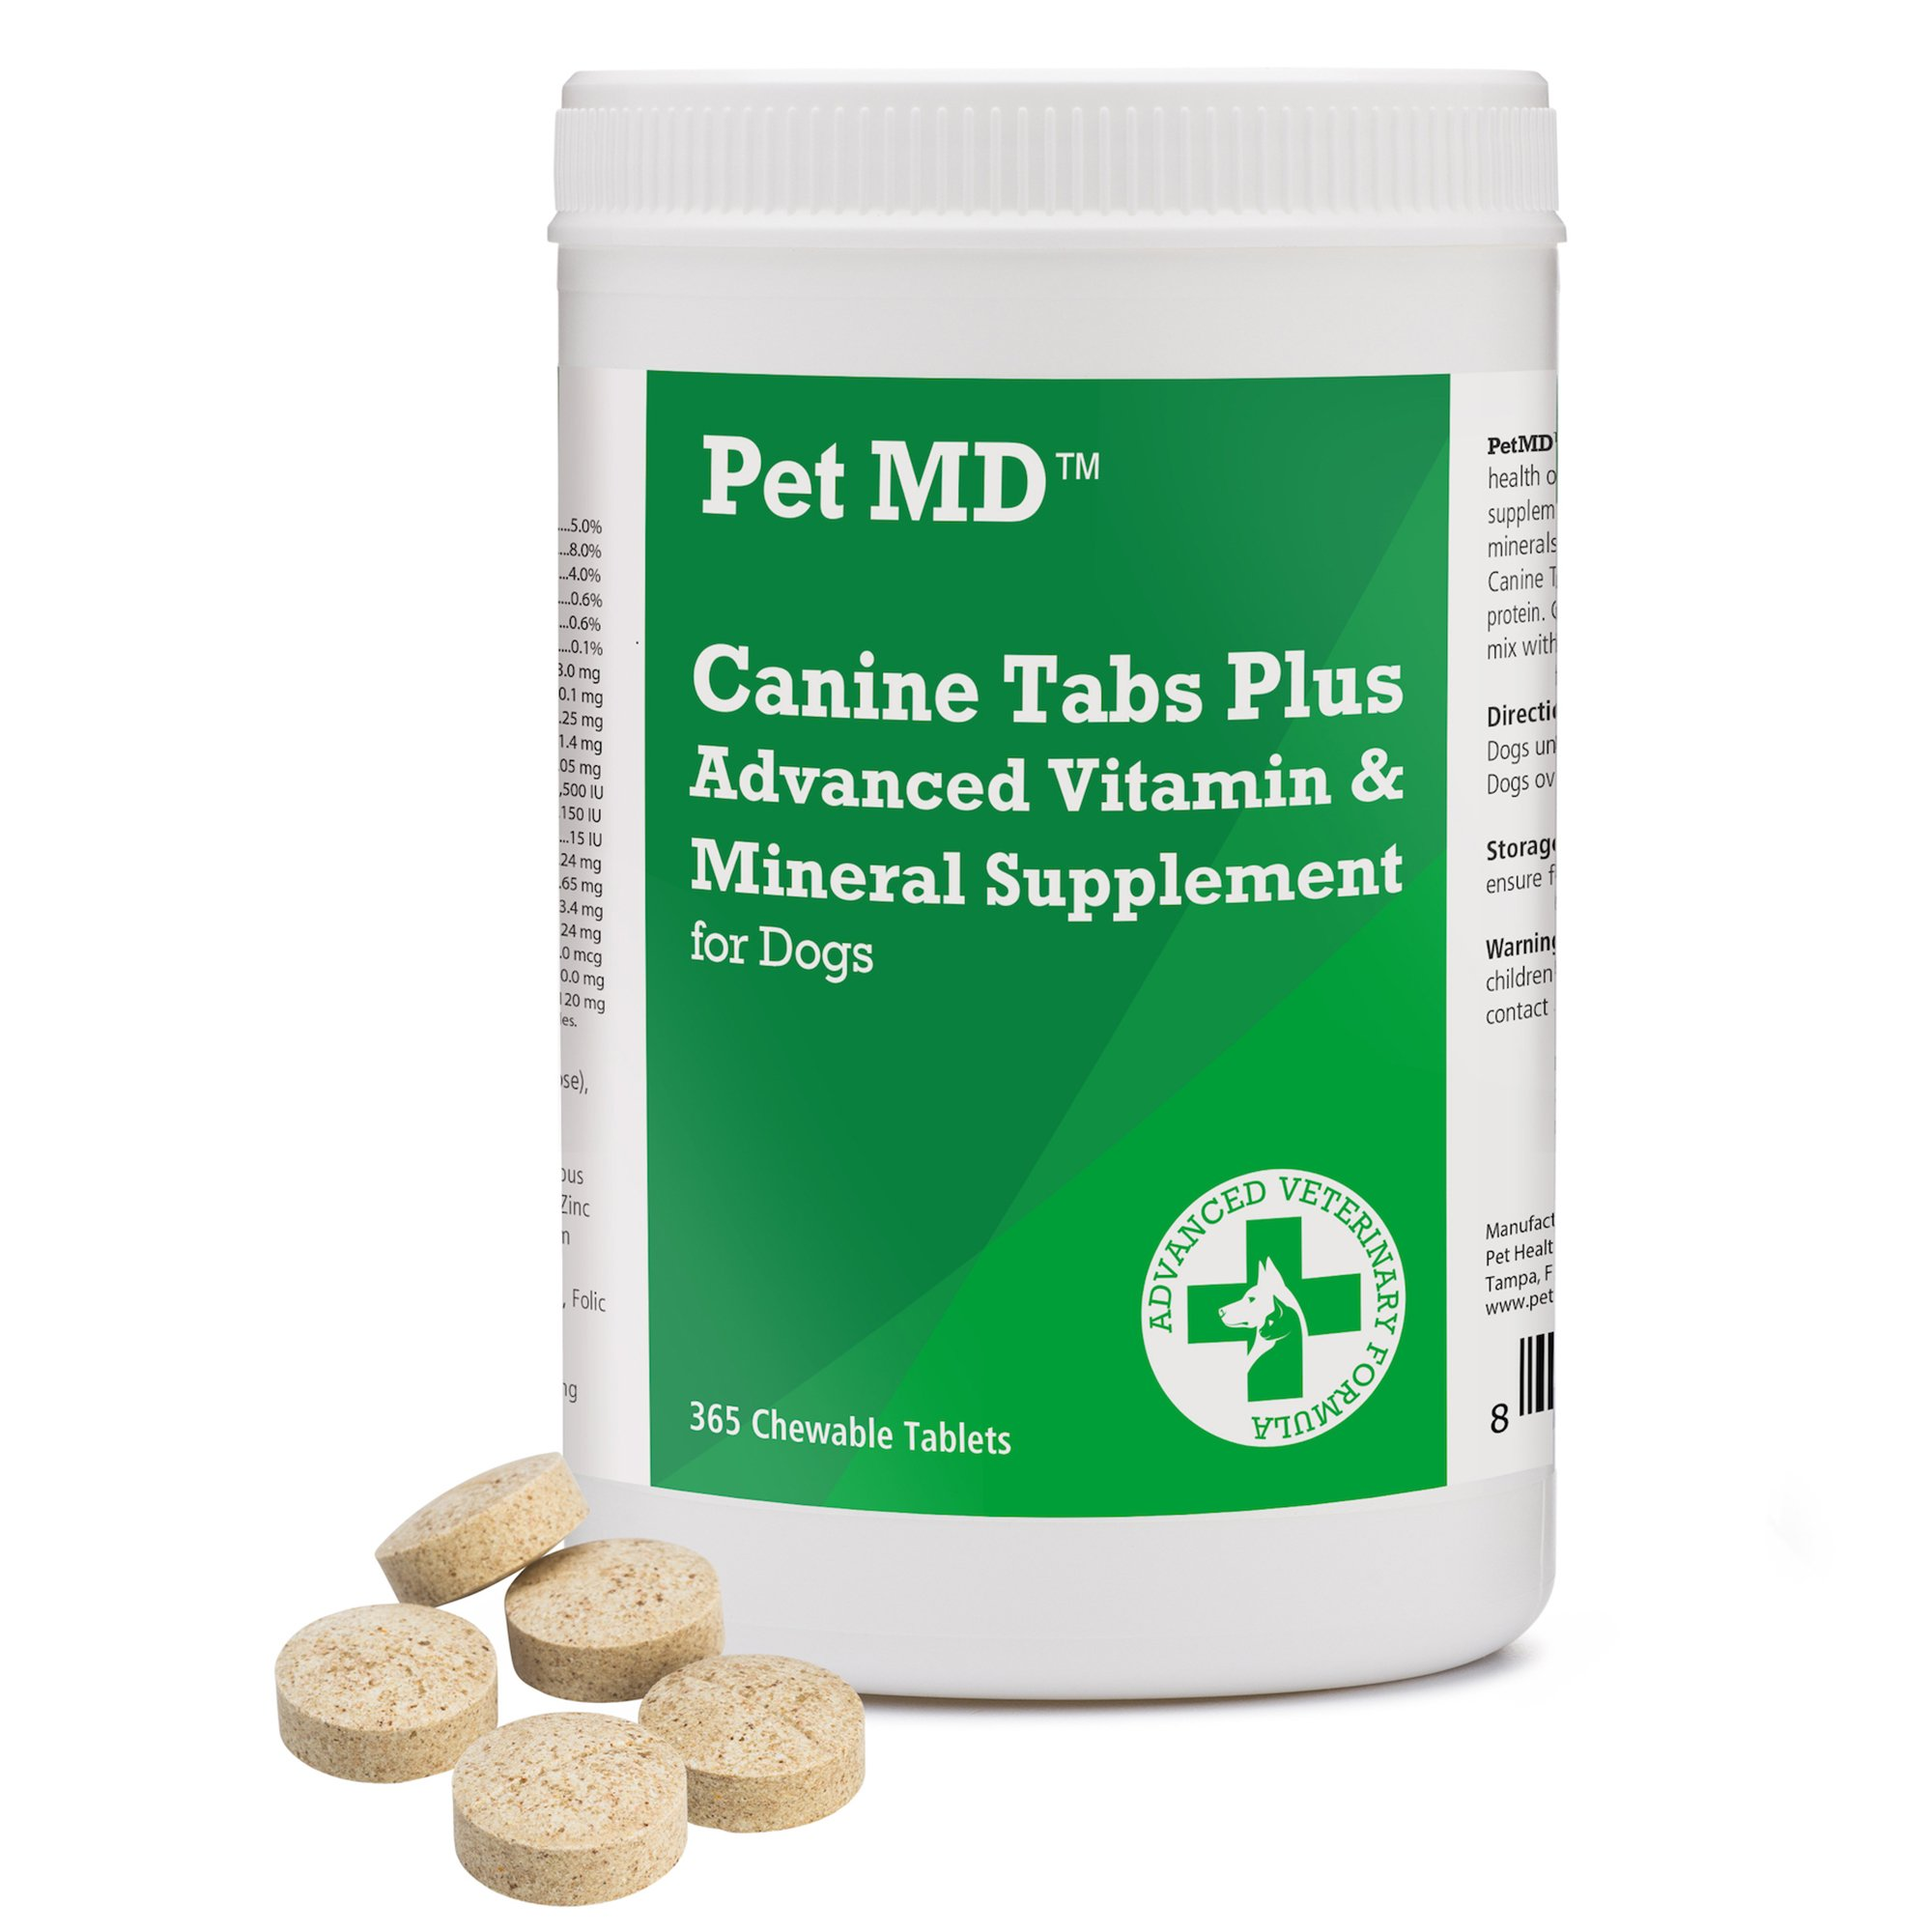 Pet MD Canine Tabs Plus 365 Count - Advanced Multivitamins for Dogs - Natural Daily Vitamin and Mineral Nutritional Supplement - Liver Flavored Chewable Tablets